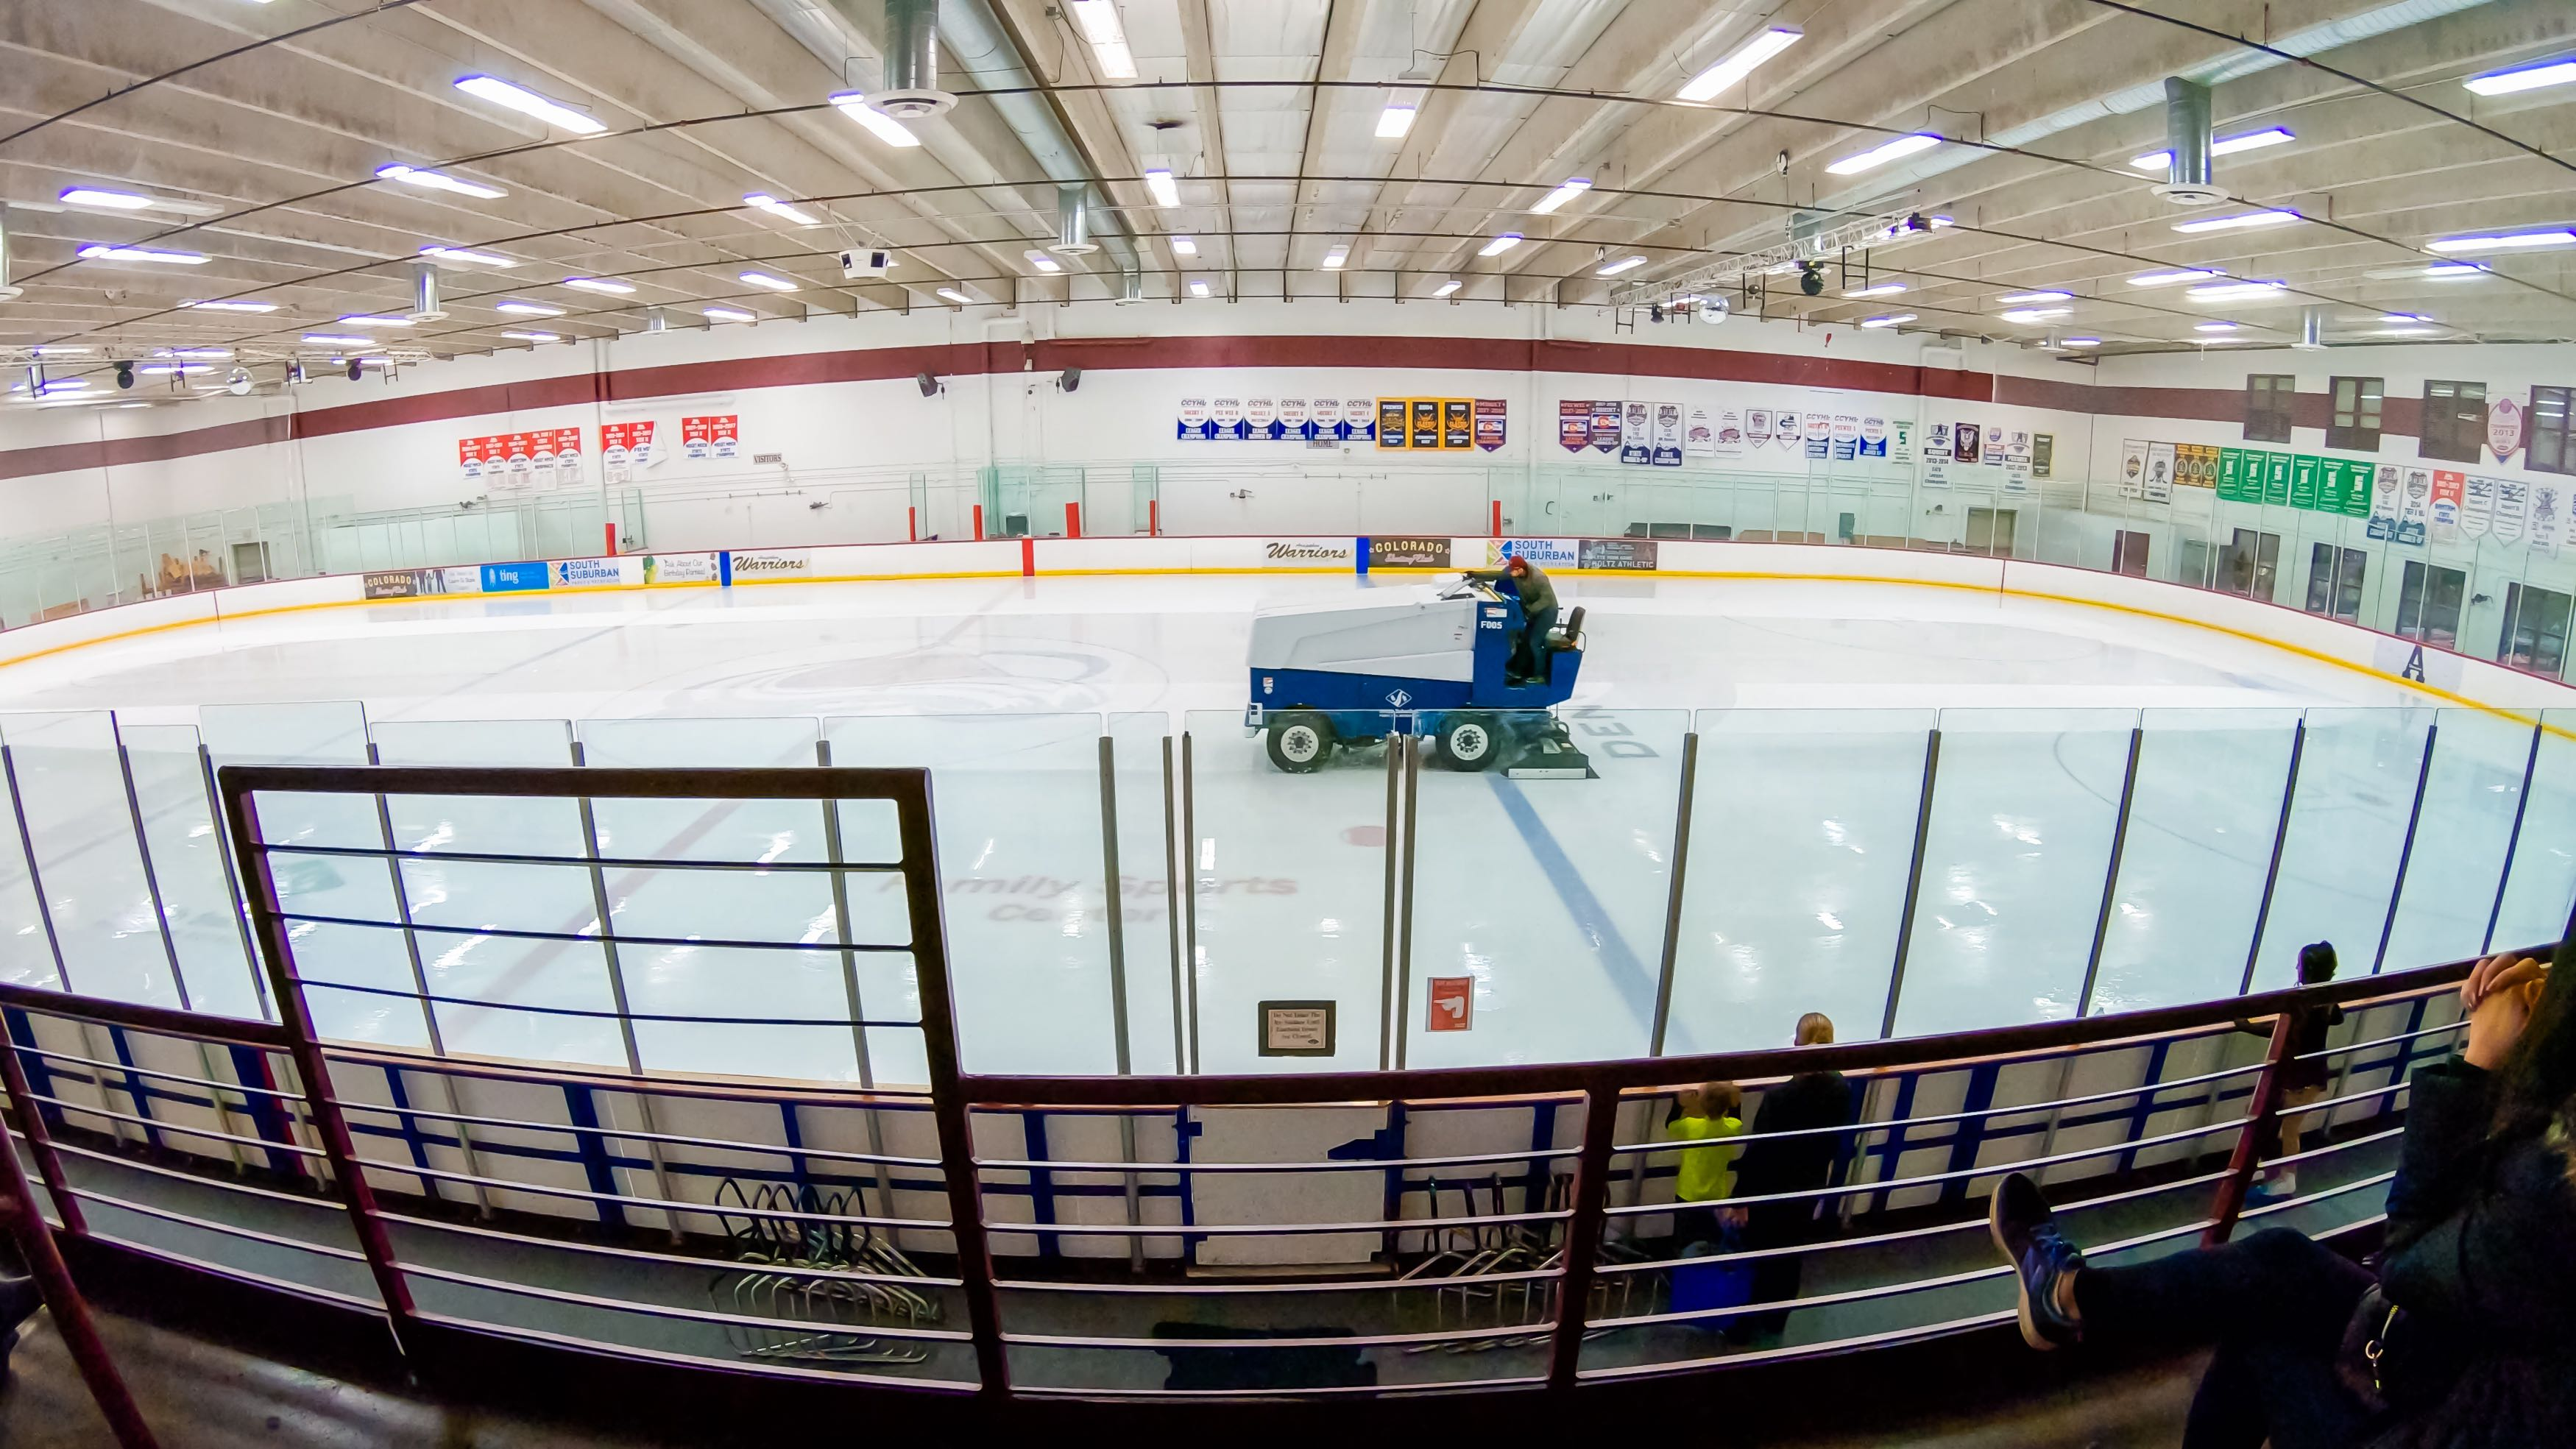 Zamboni on ice rink